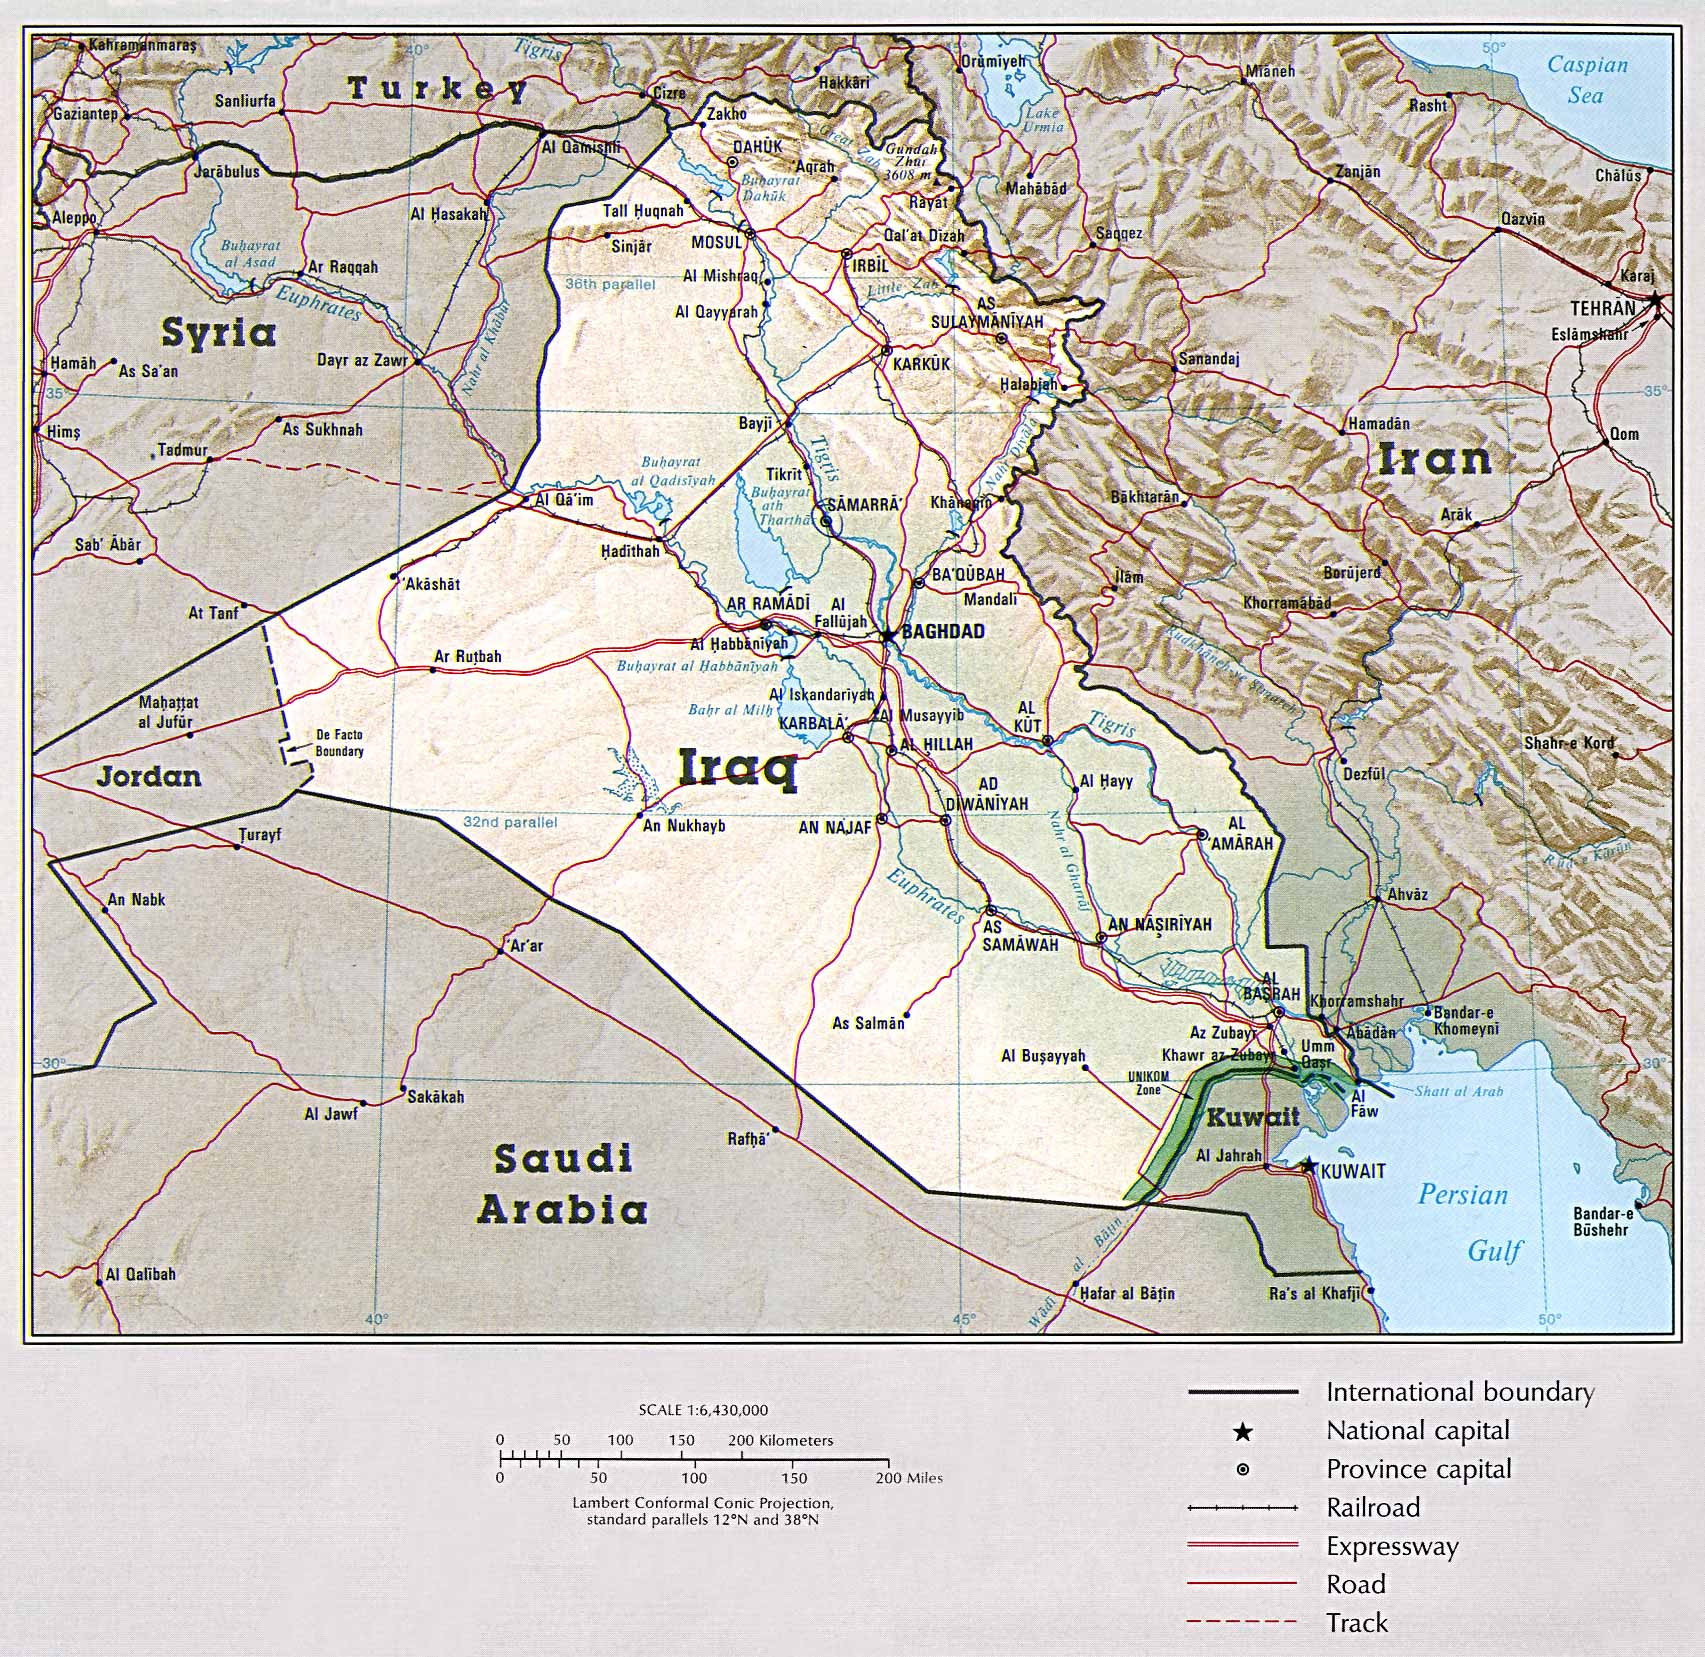 Map Of Iraq Iraq [Shaded Relief Map] From the CIA Atlas of the Middle East, 1993 (580k)